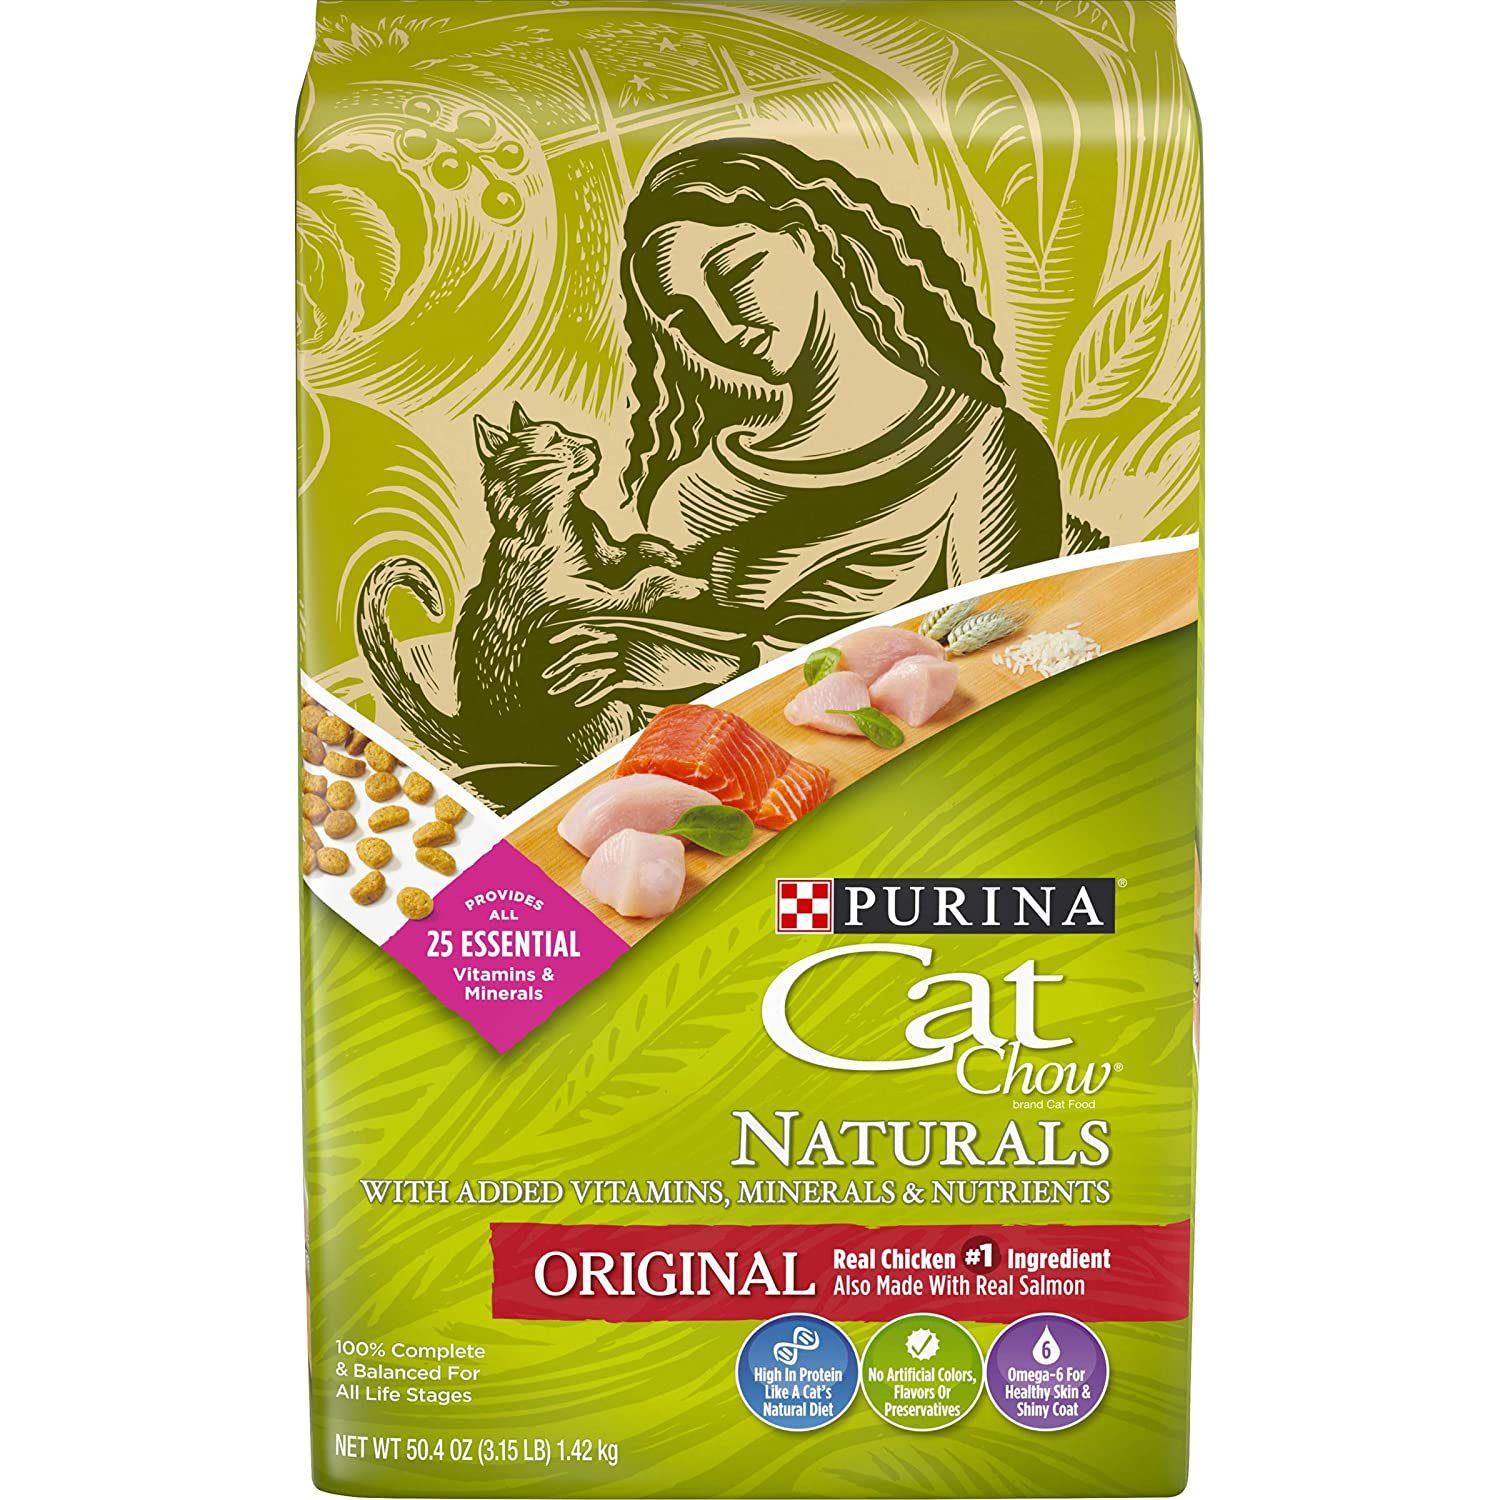 Purina Cat Chow Naturals Dry Cat Food, Original With Real Chicken, 3.15 Lb Bag